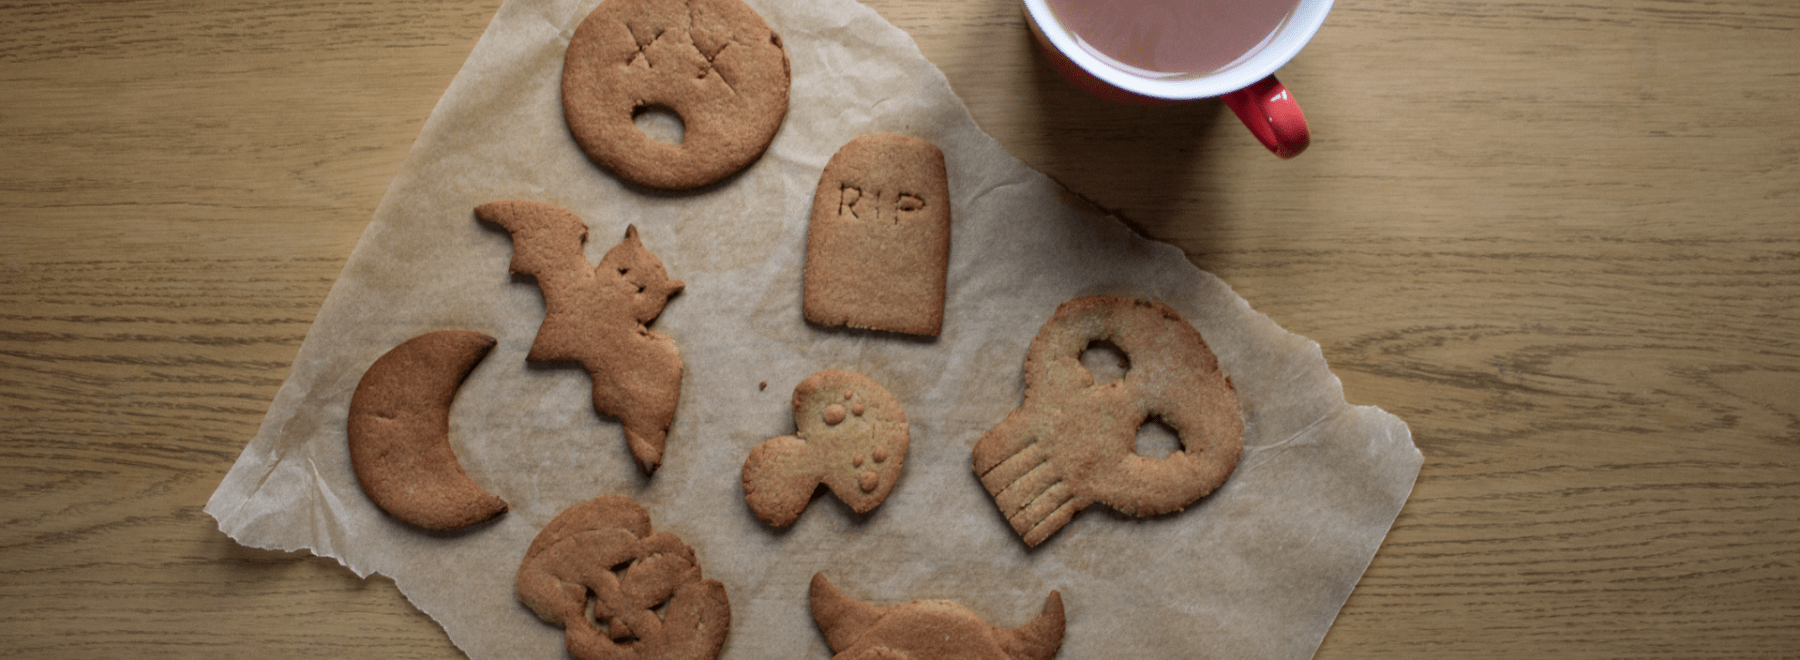 Flatlay showing handmade halloween biscuits sat next to a mug of tea